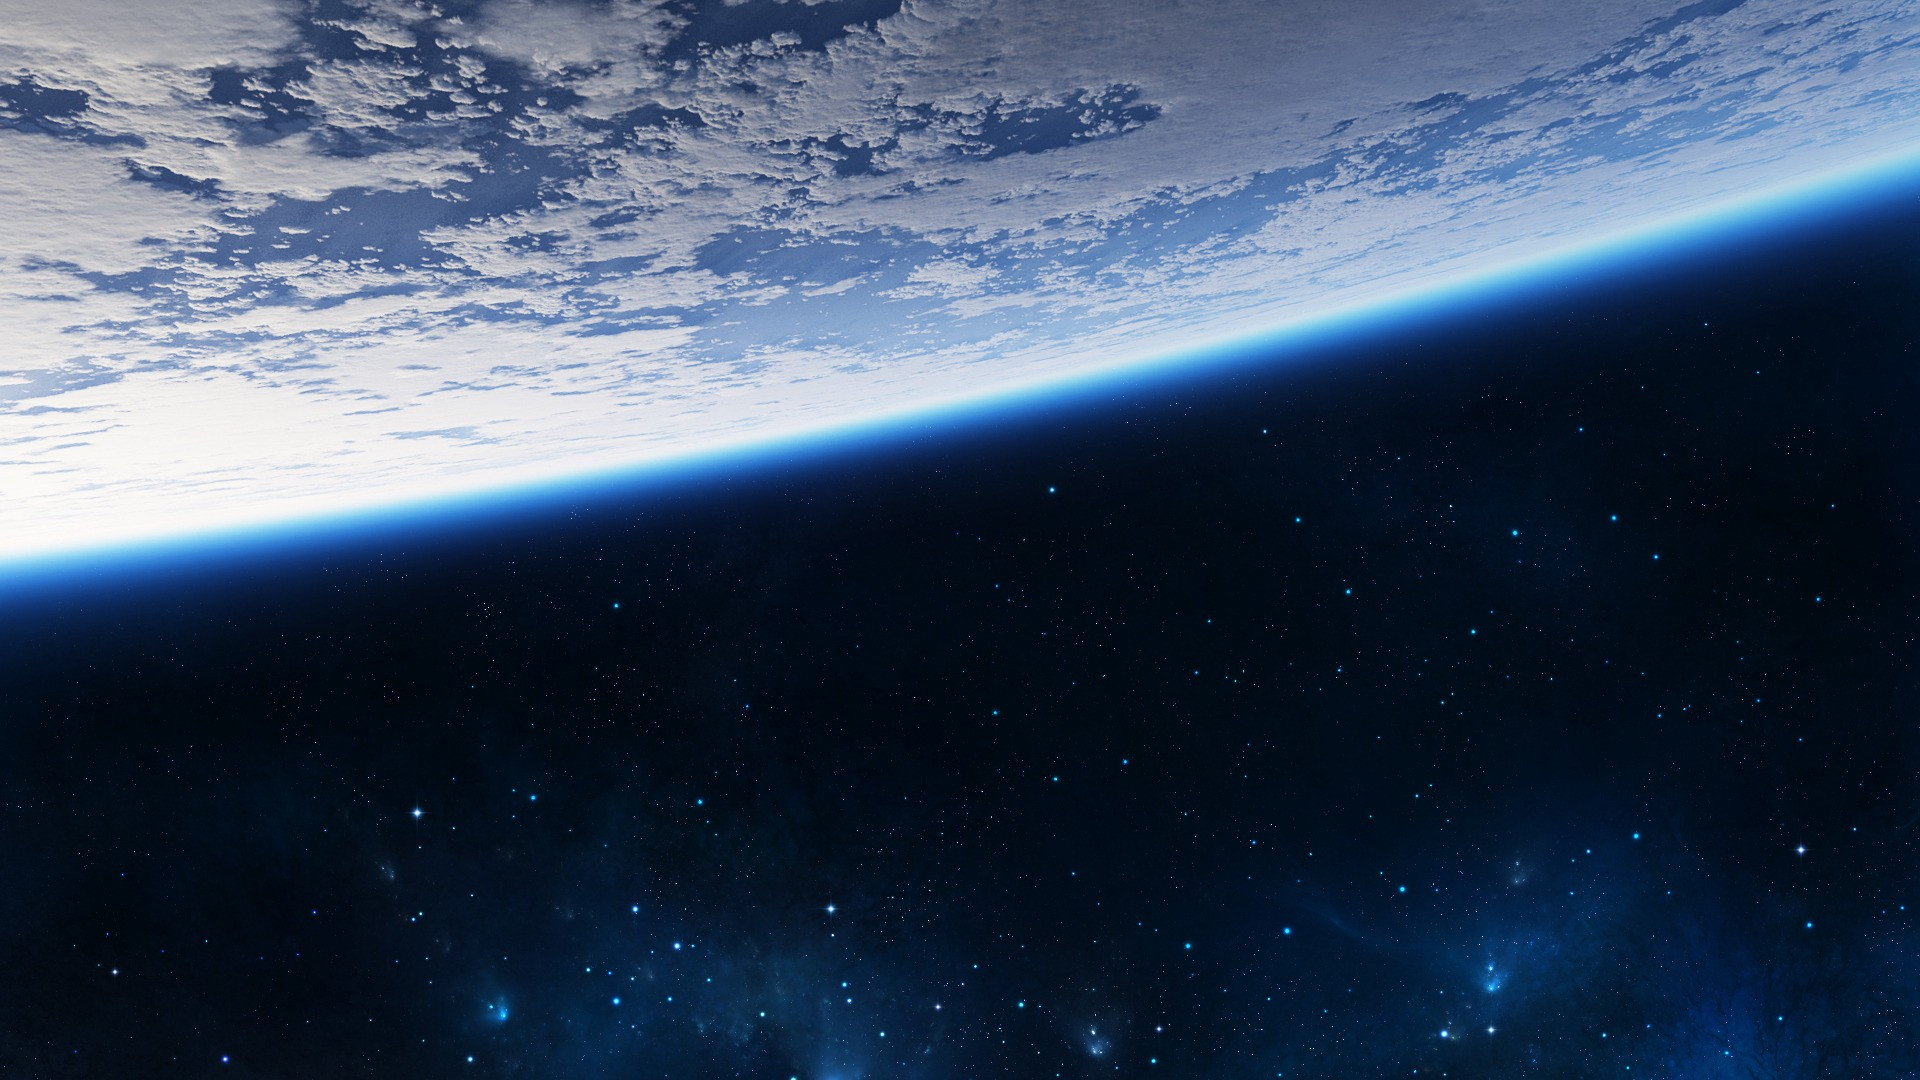 Earth from space wallpaper 1920x1080 wallpapersafari for From outer space